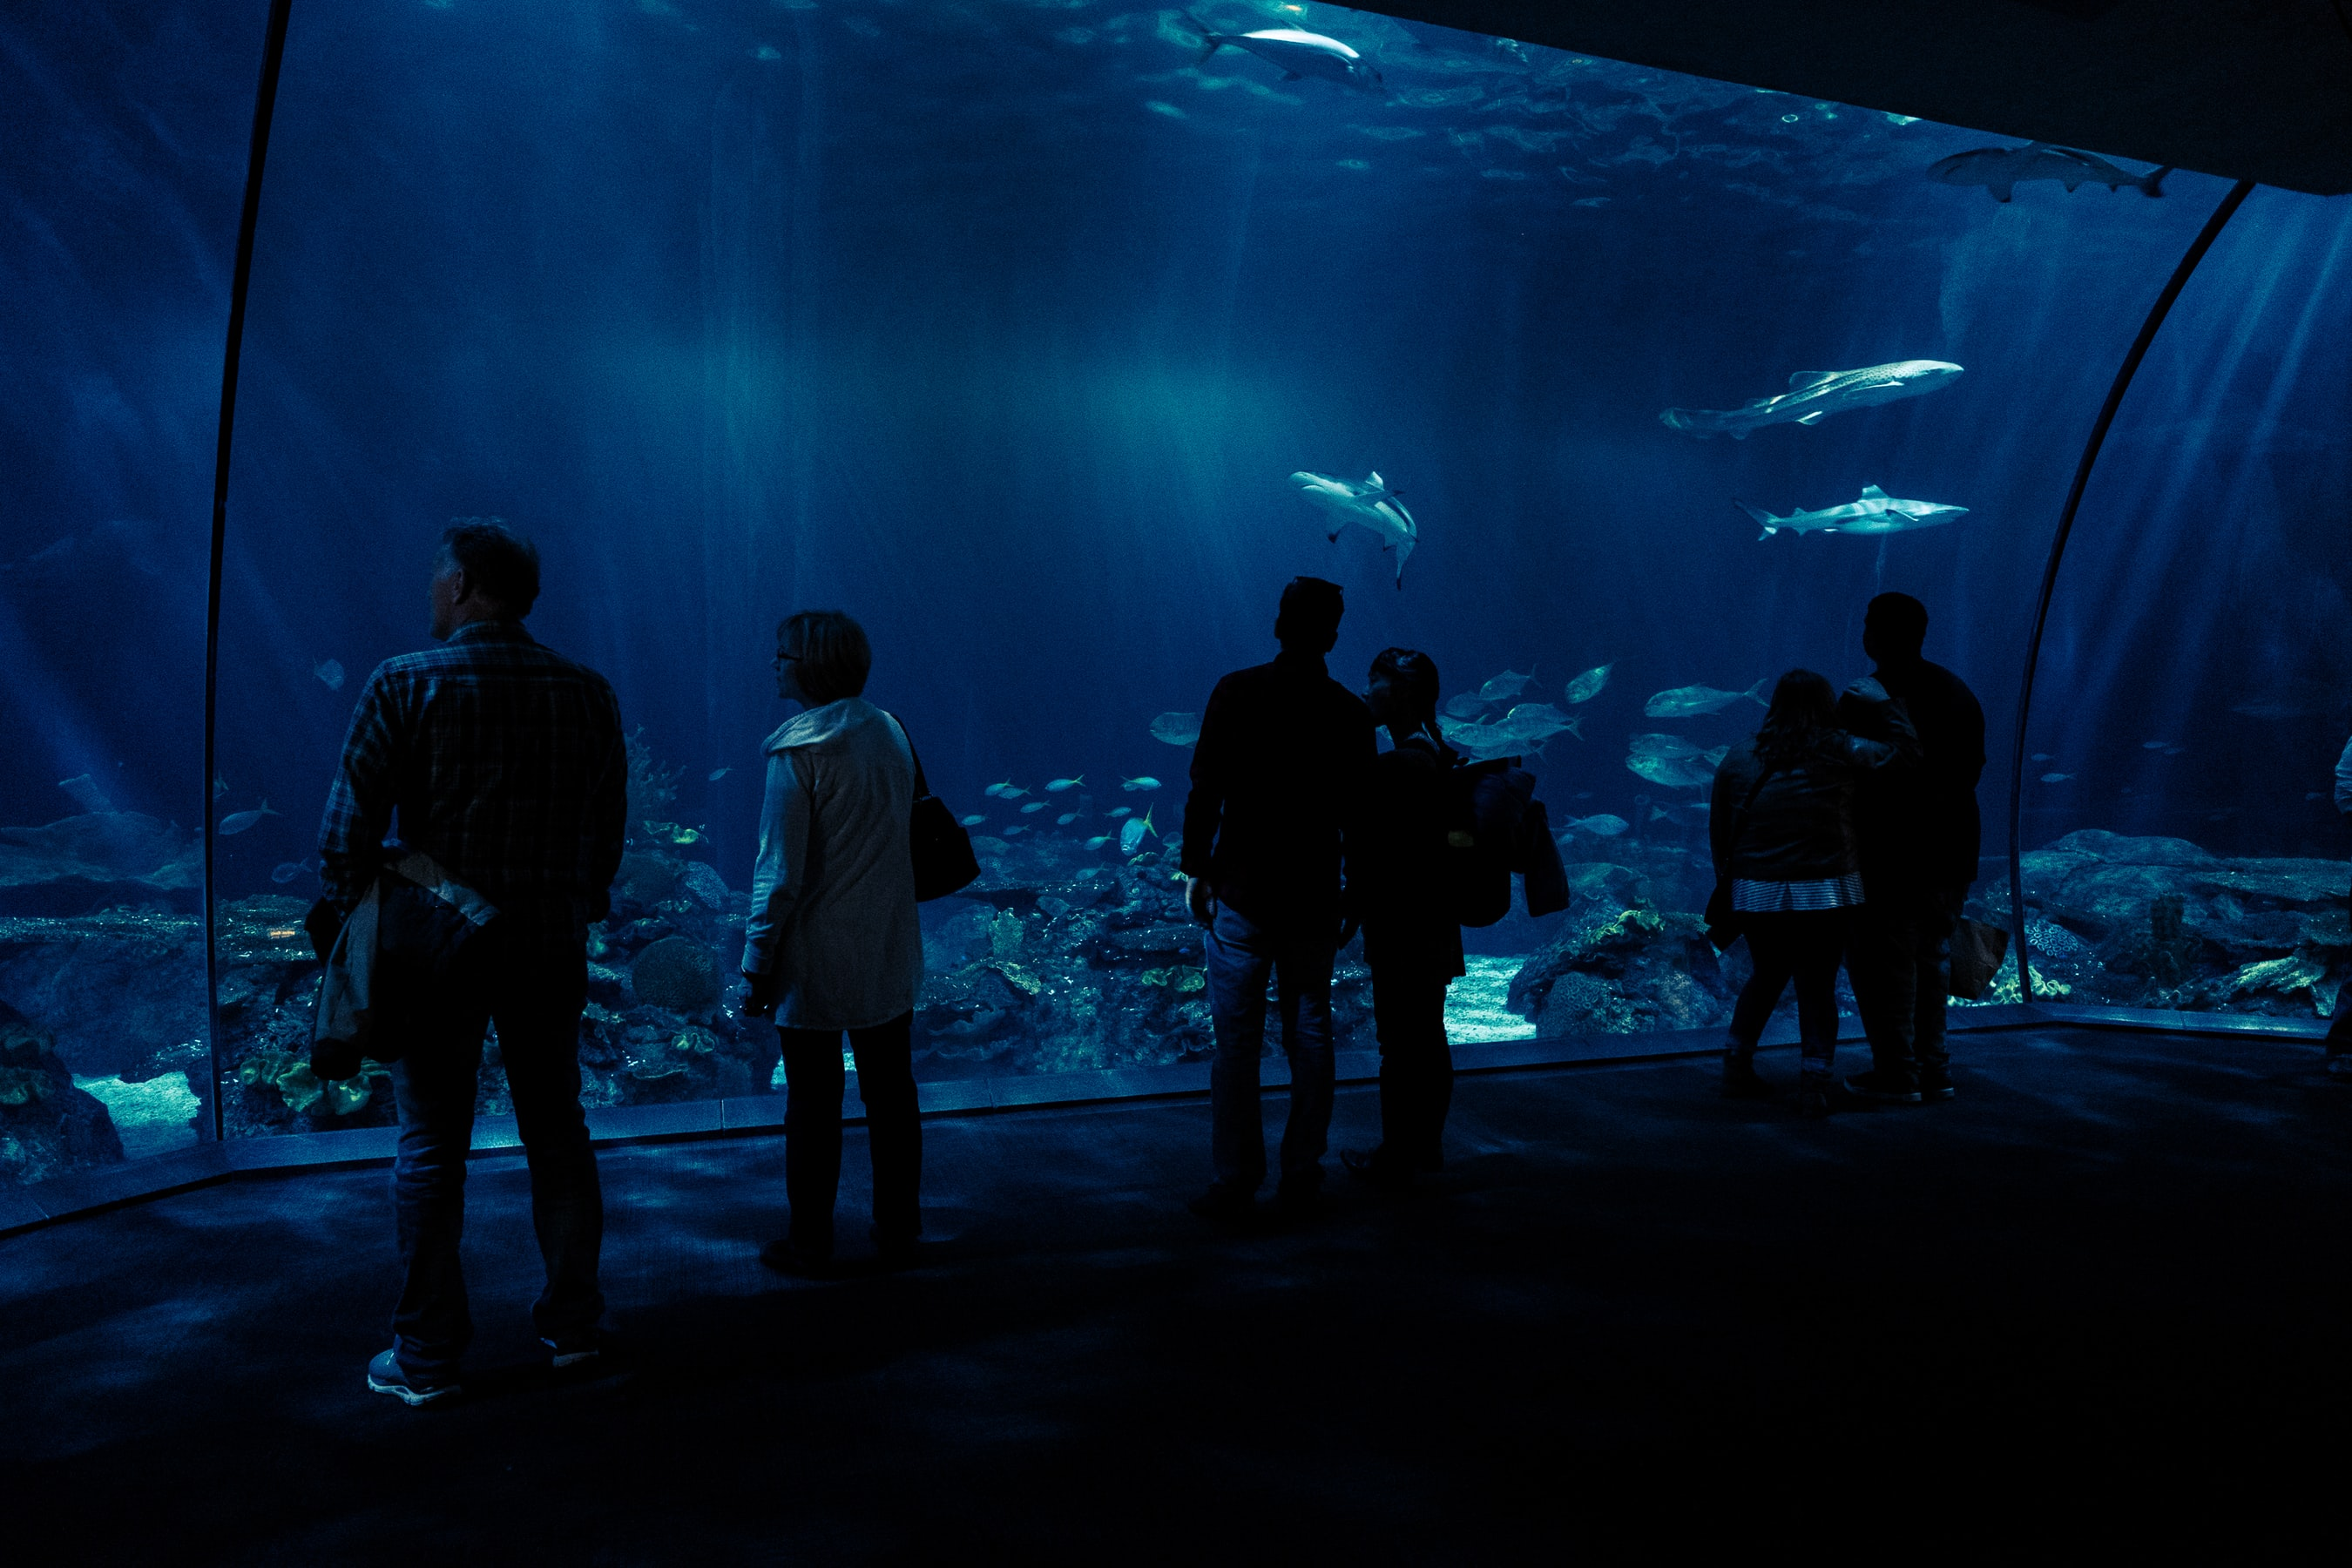 Mondays, Tuesdays and Wednesdays are free days at the Shedd Aquarium in September